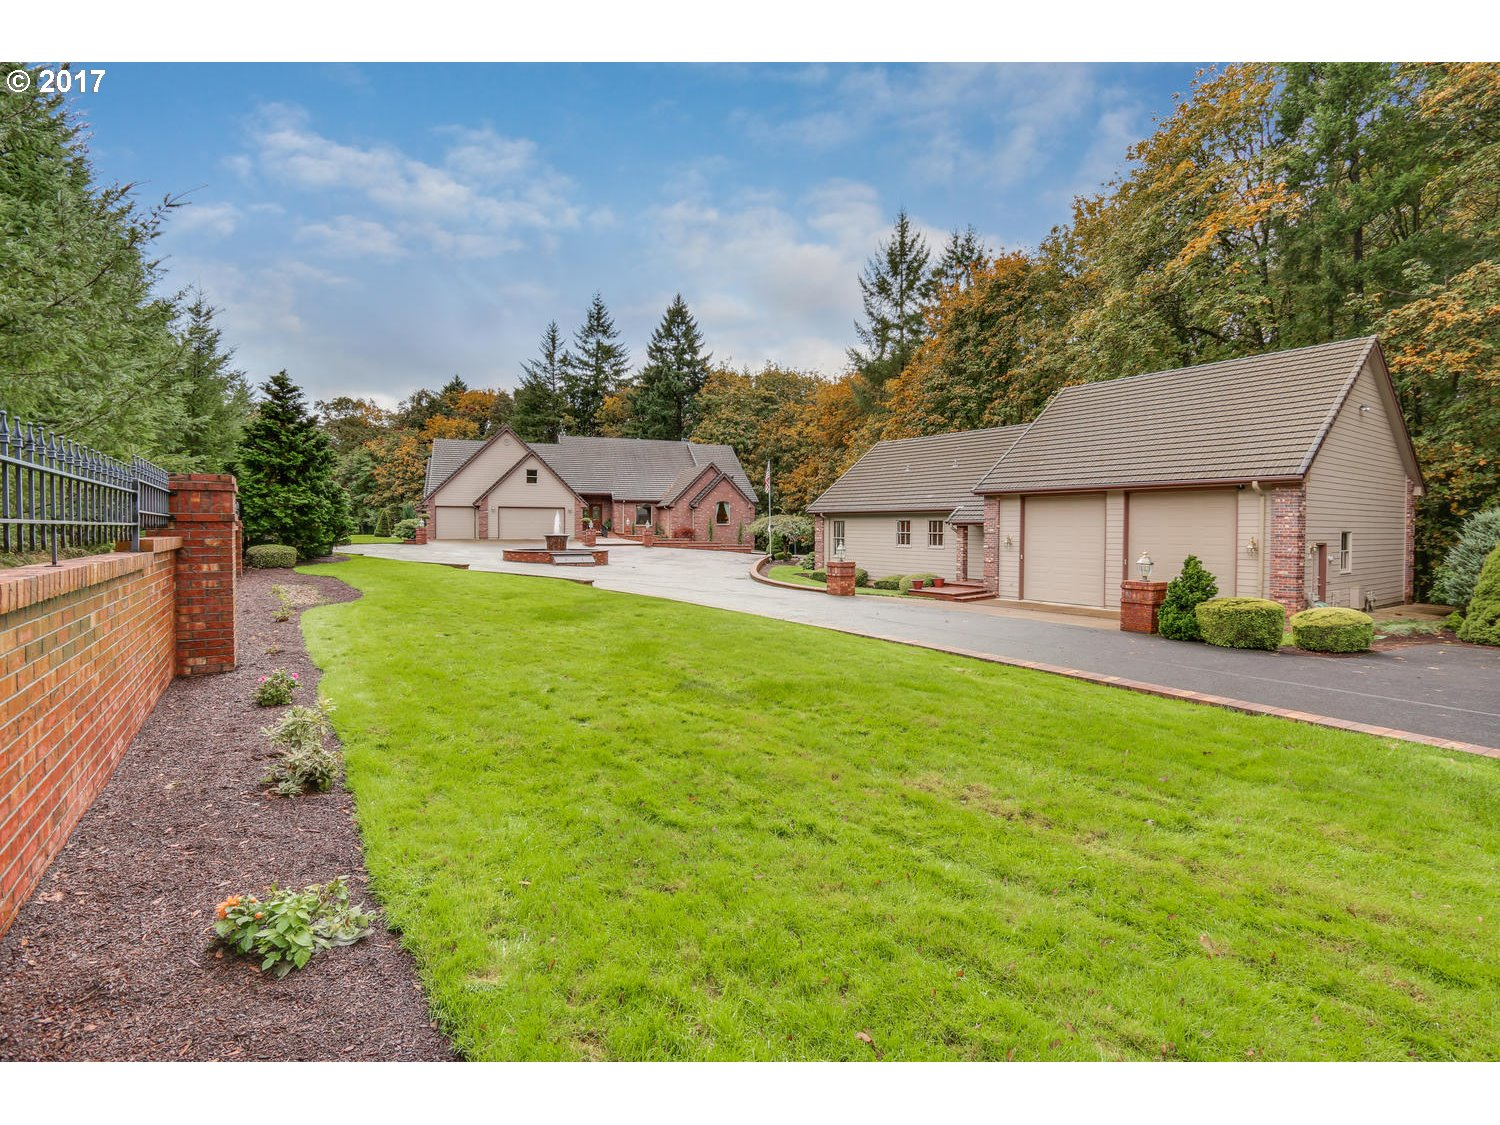 10550 S KELLAND CT Oregon City, OR 97045 - MLS #: 17020586